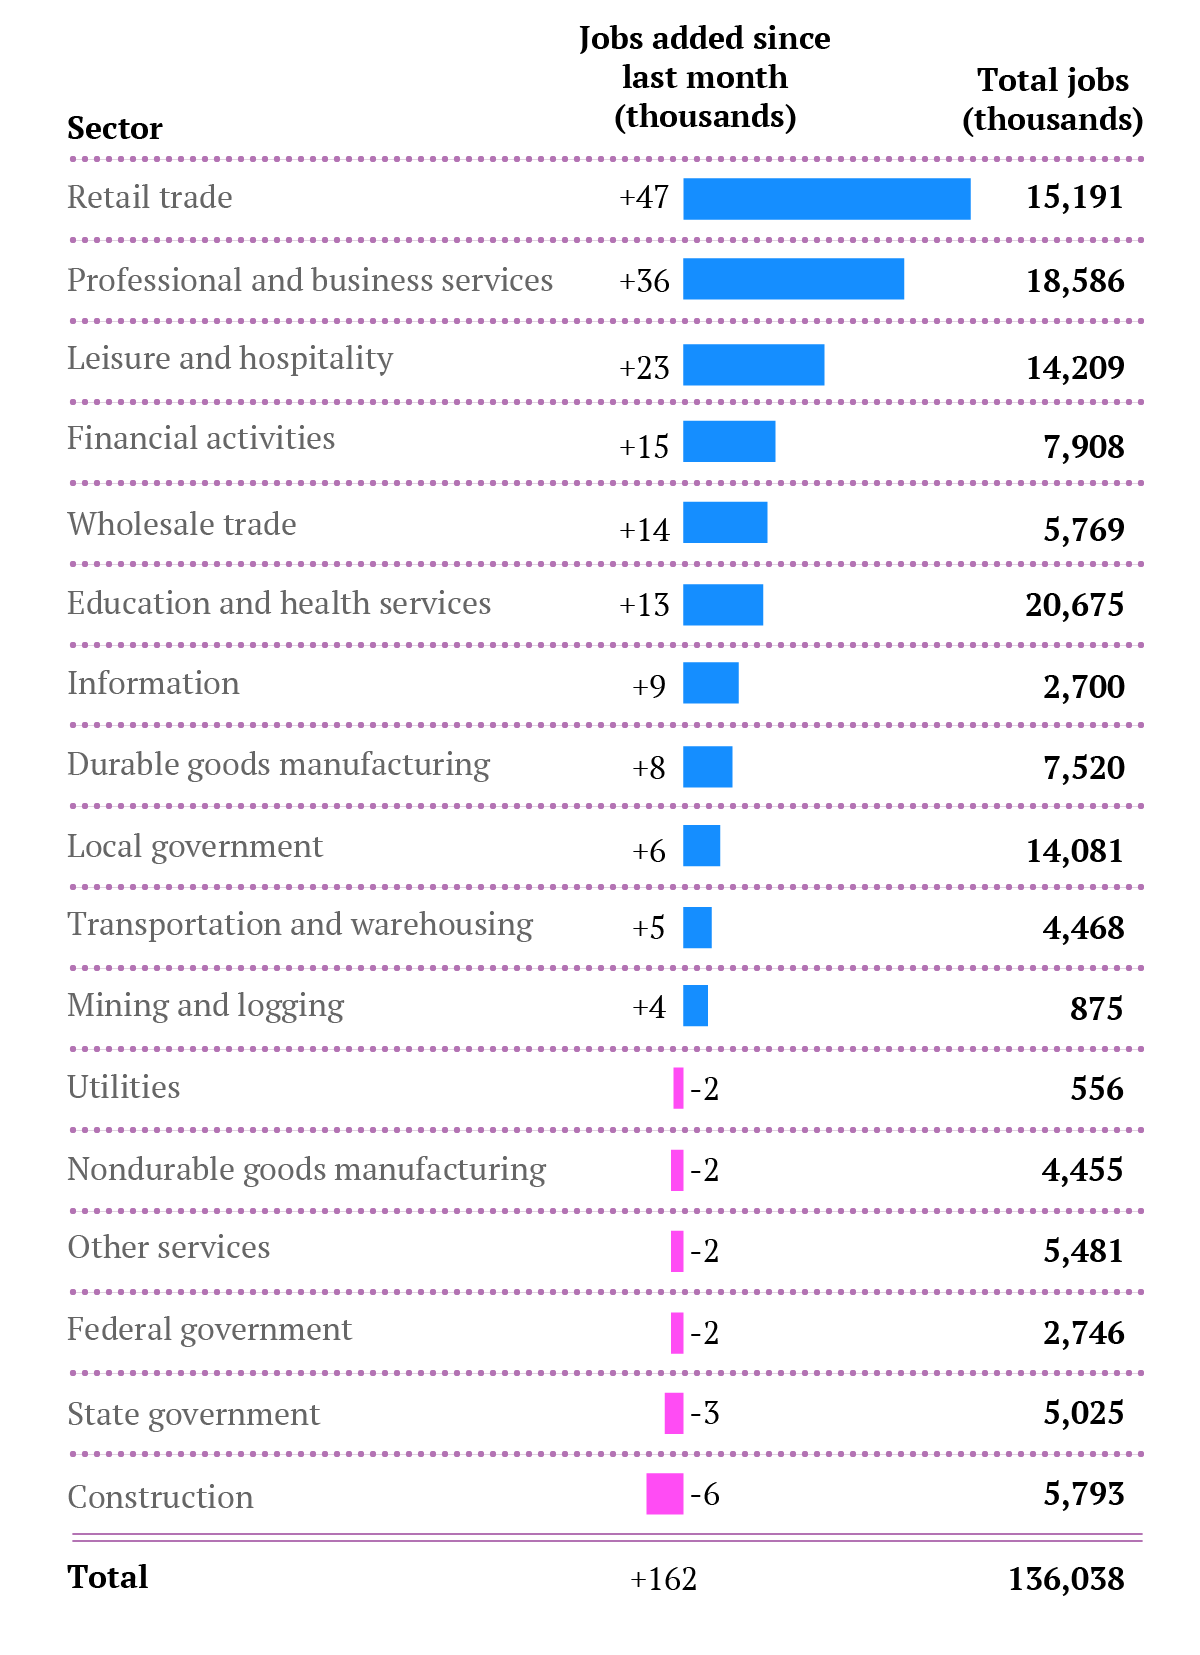 Jobs-by-sector-July13